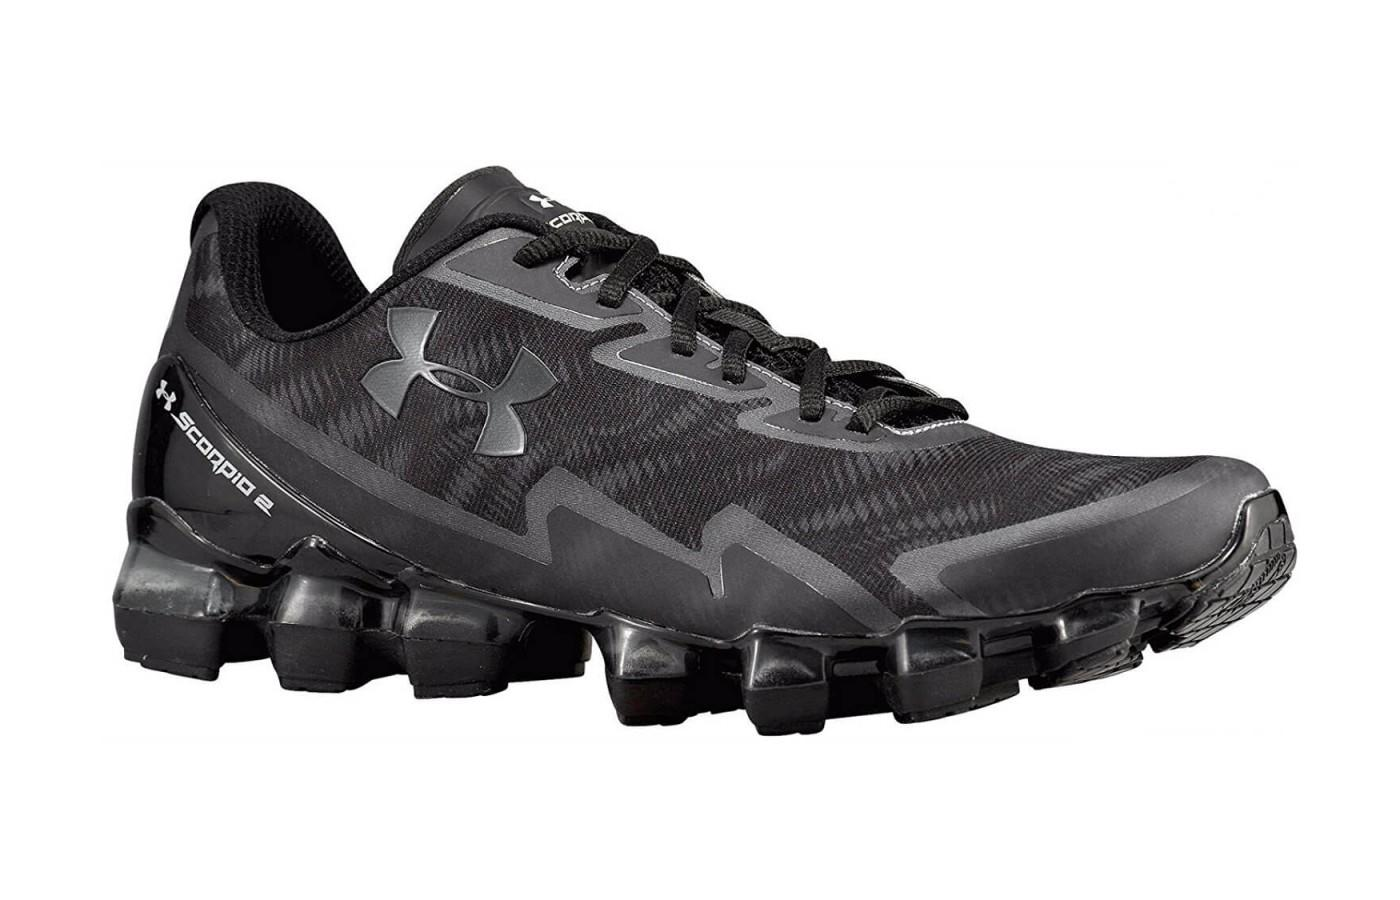 Cleat-like lugs are visible from side profile of the Under Armour Scorpio 2